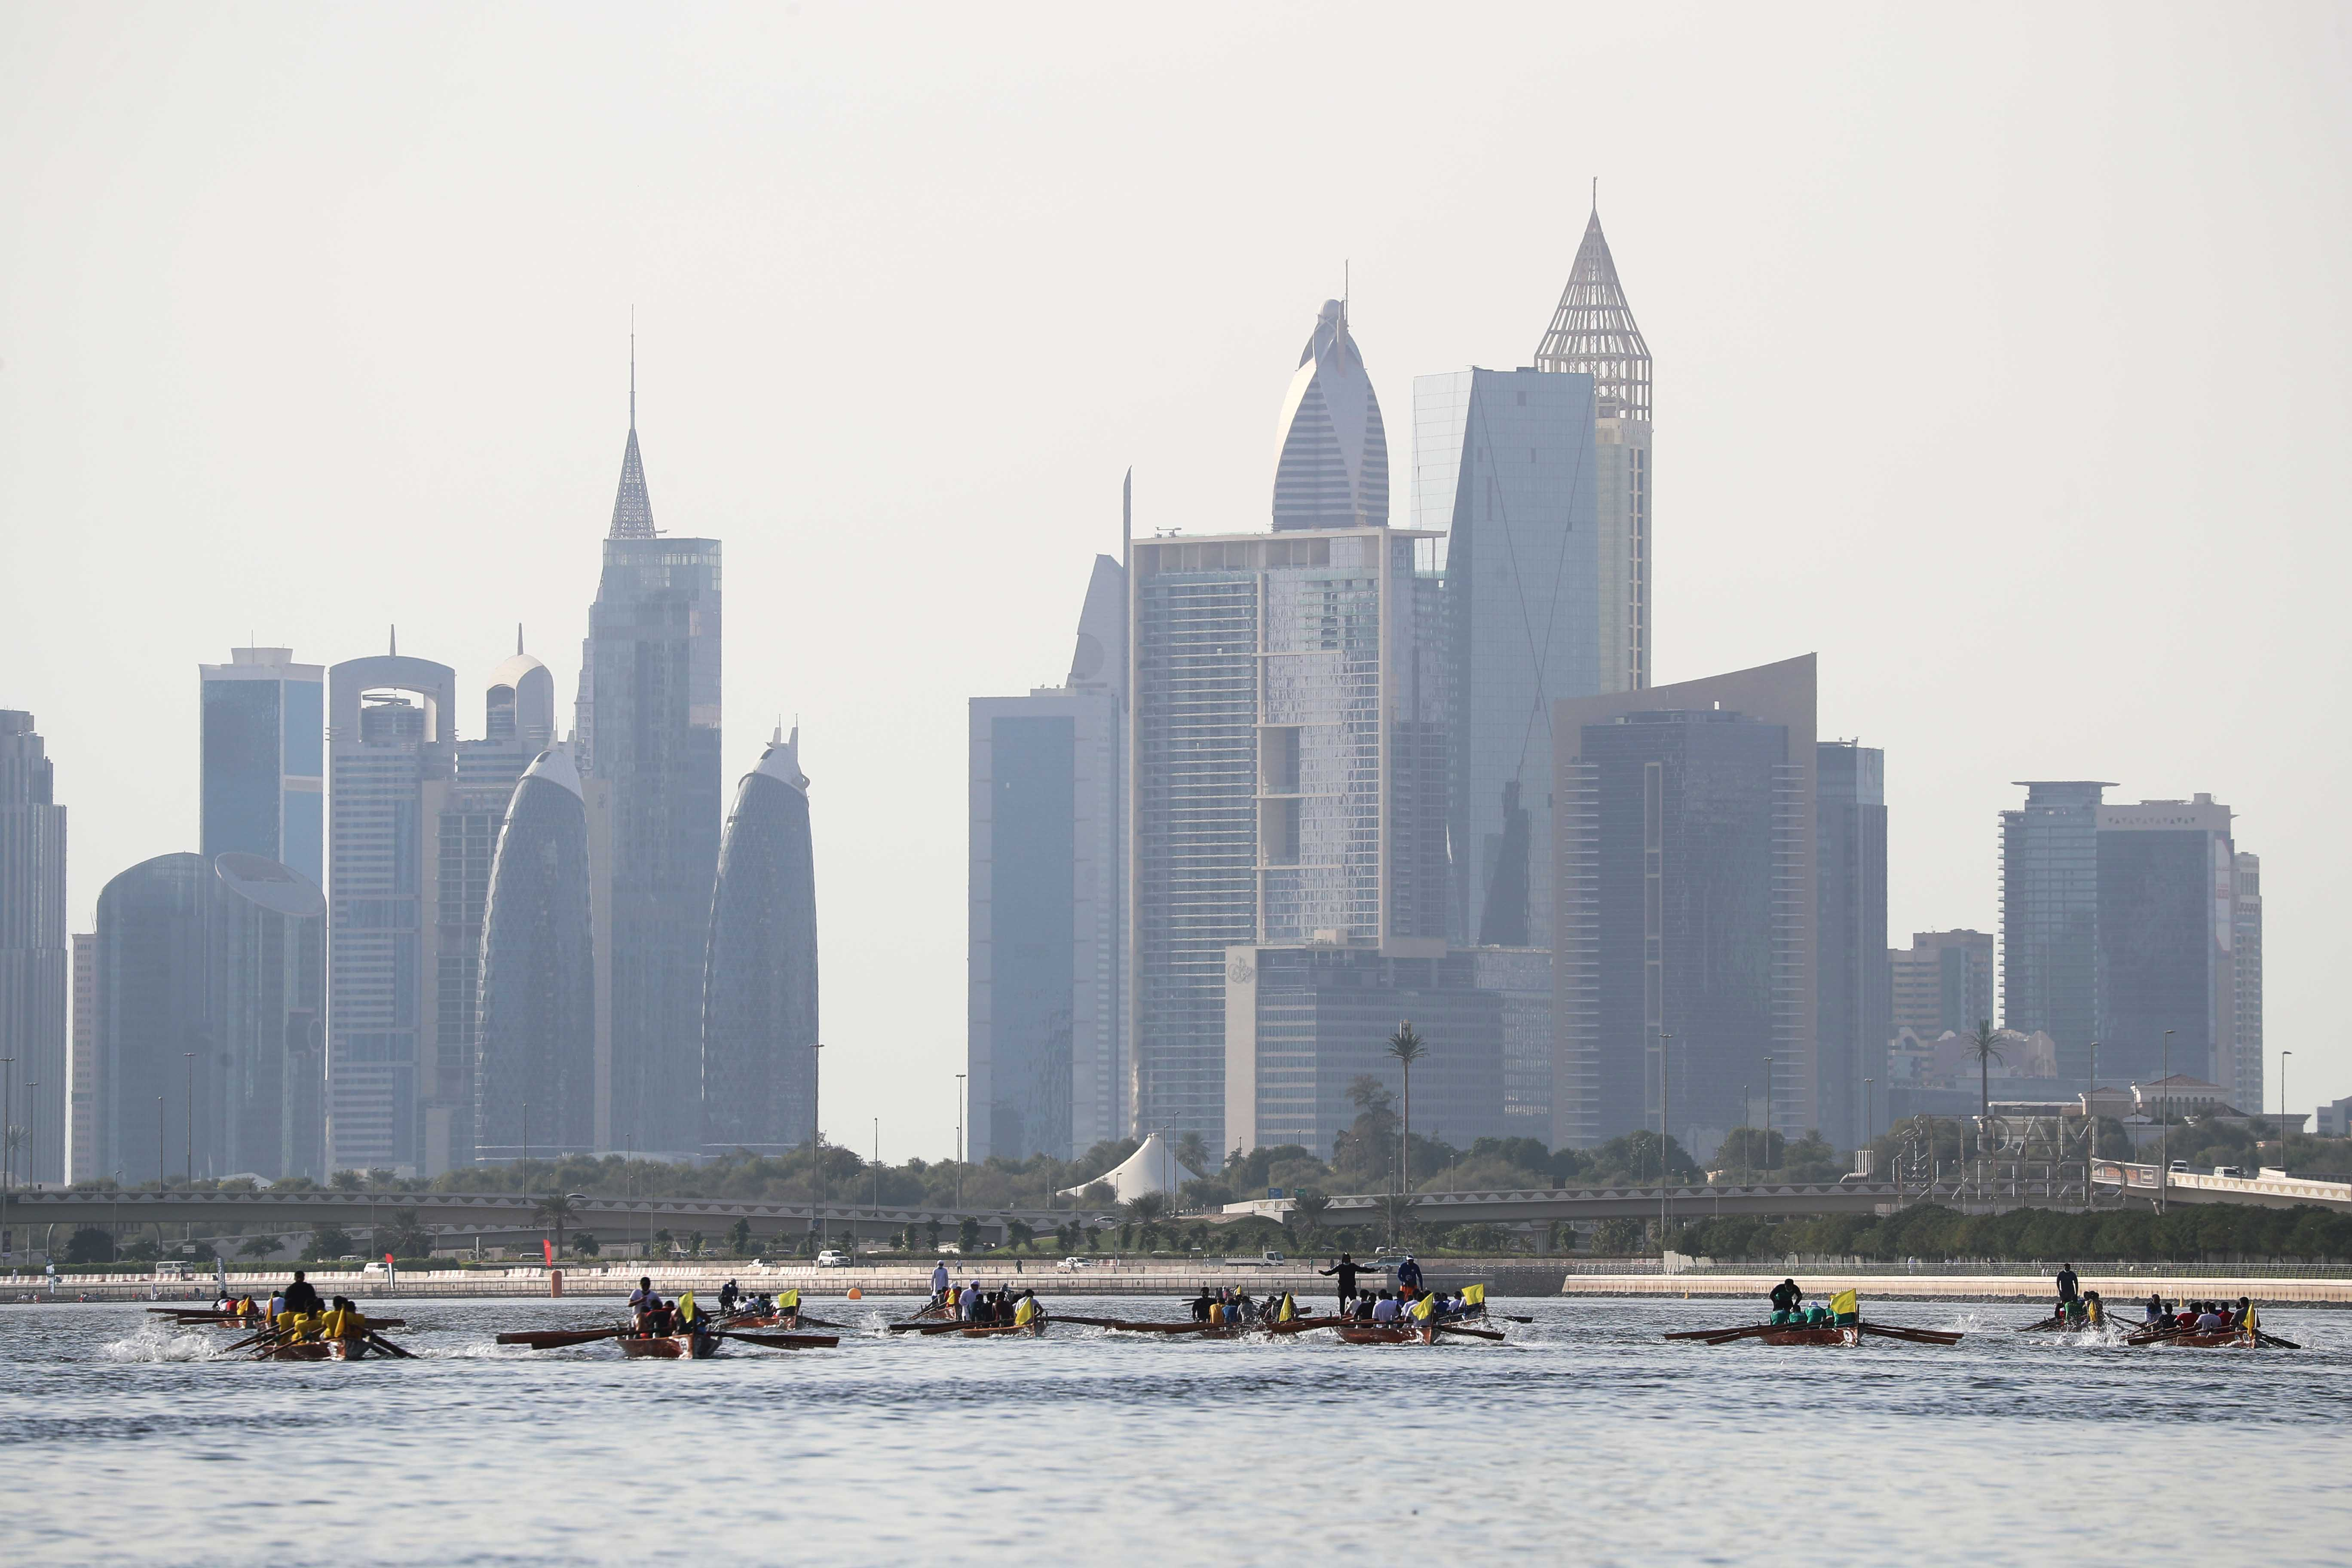 Bahrain and Oman boats Shine at the Opening Round of the Rowing Season